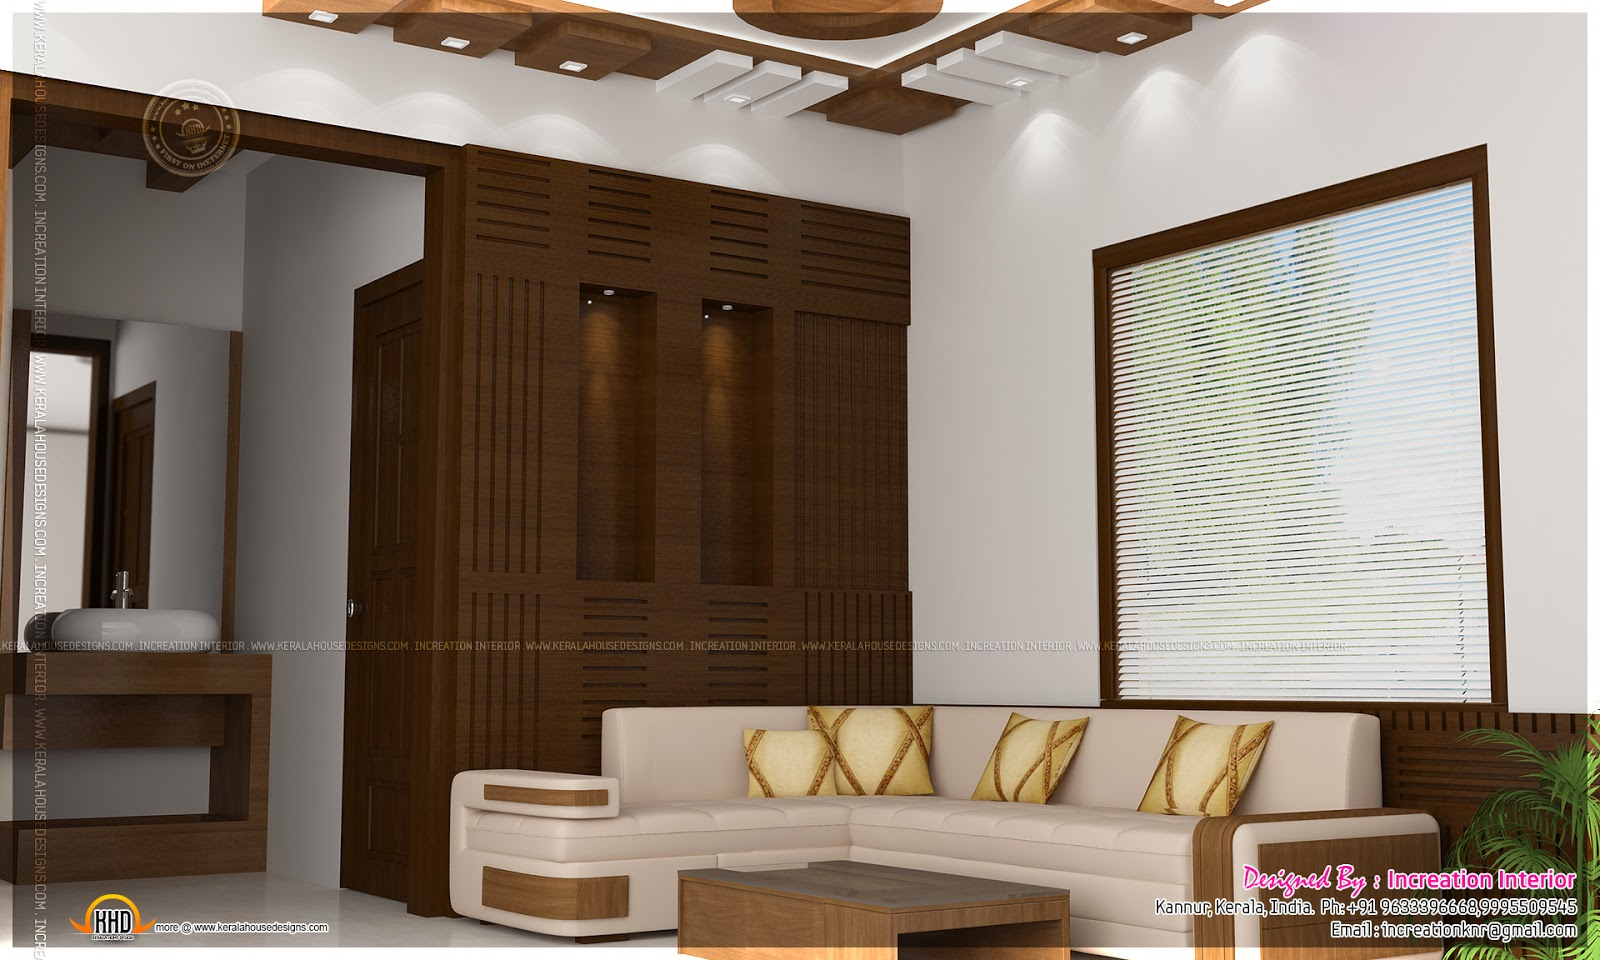 Interior design ideas by increation interior kerala for Interior designs for home